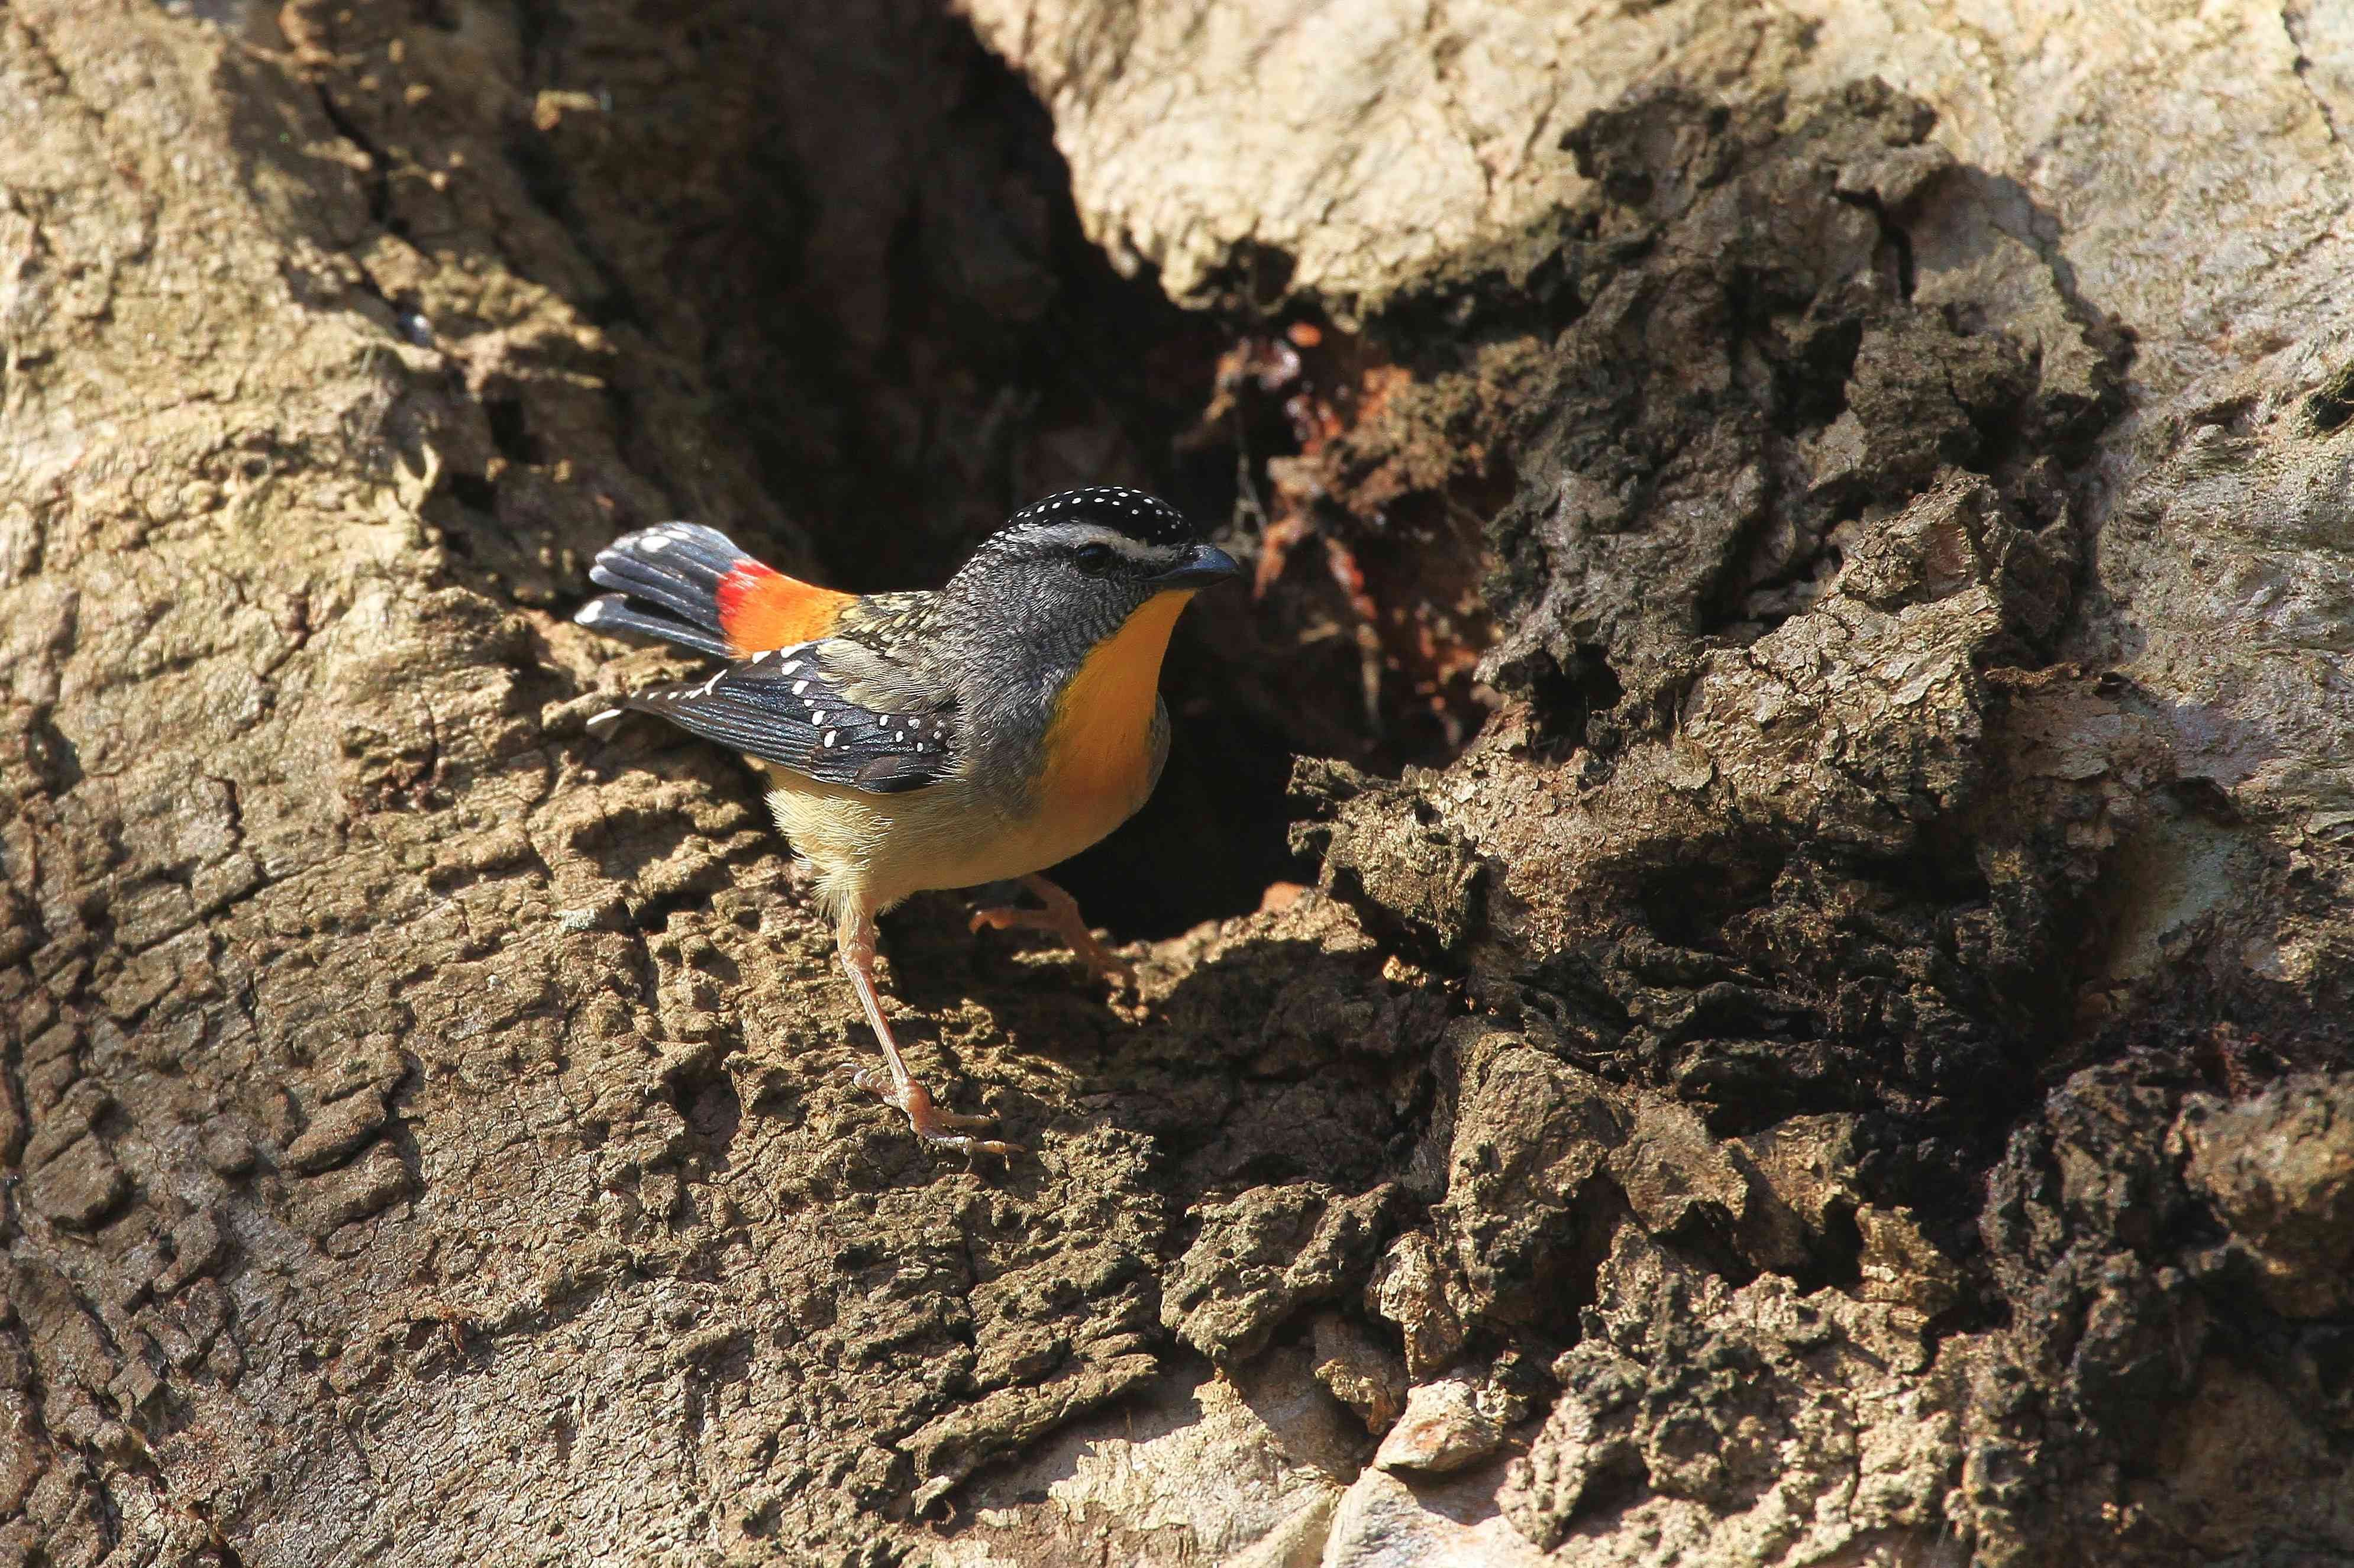 A Spotted Pardalote bird perches on a tree